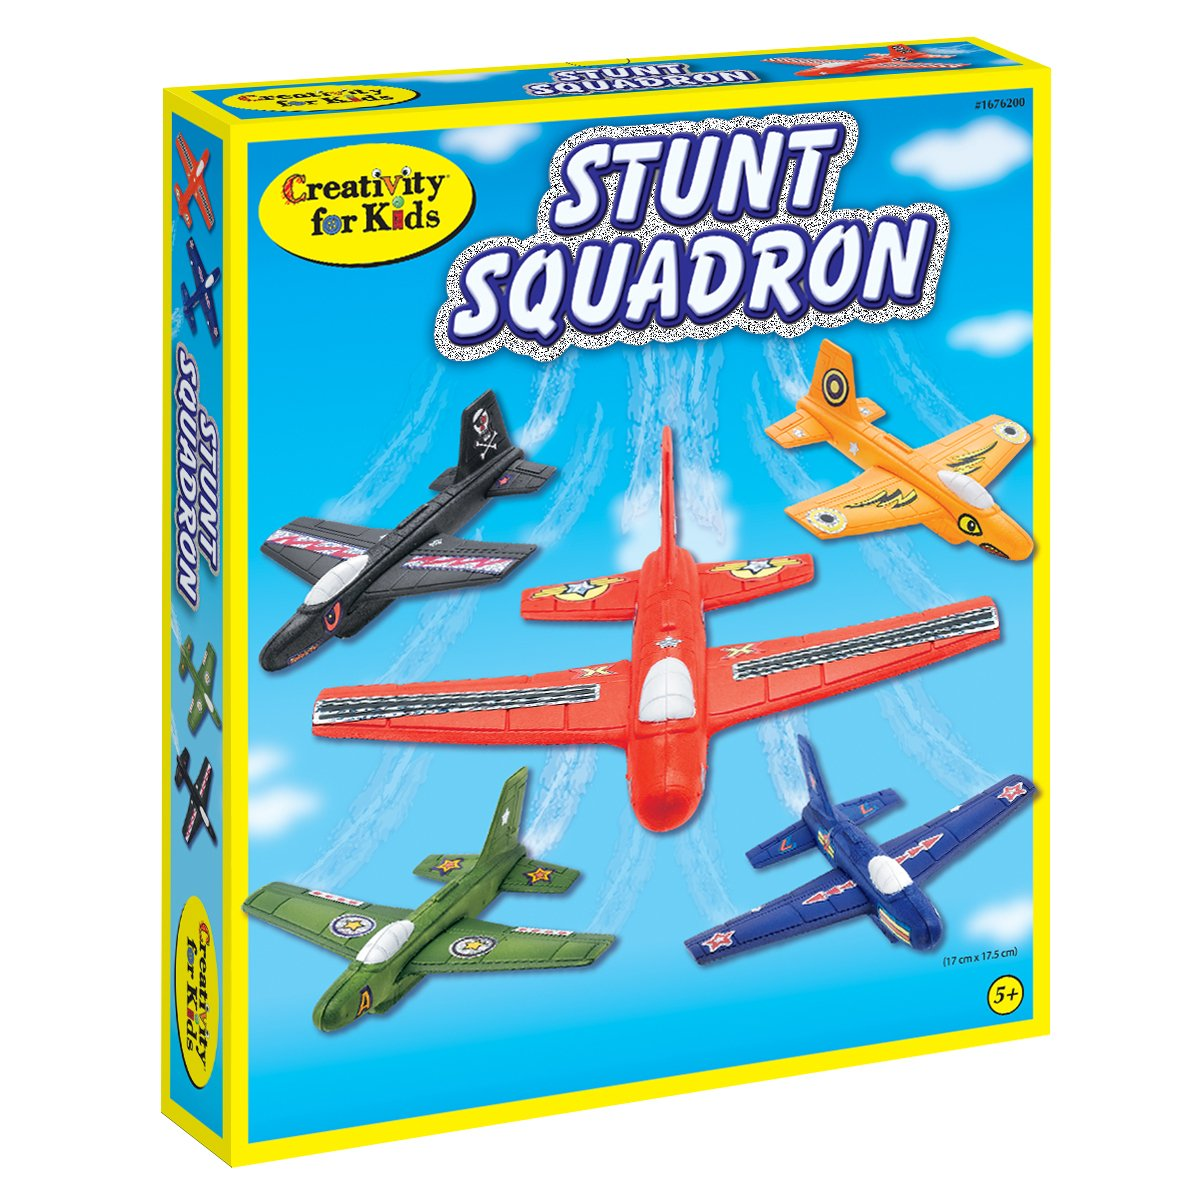 Faber Castell Creativity for Kids Stunt Squadron Craft Kit - Create 5 Foam Planes